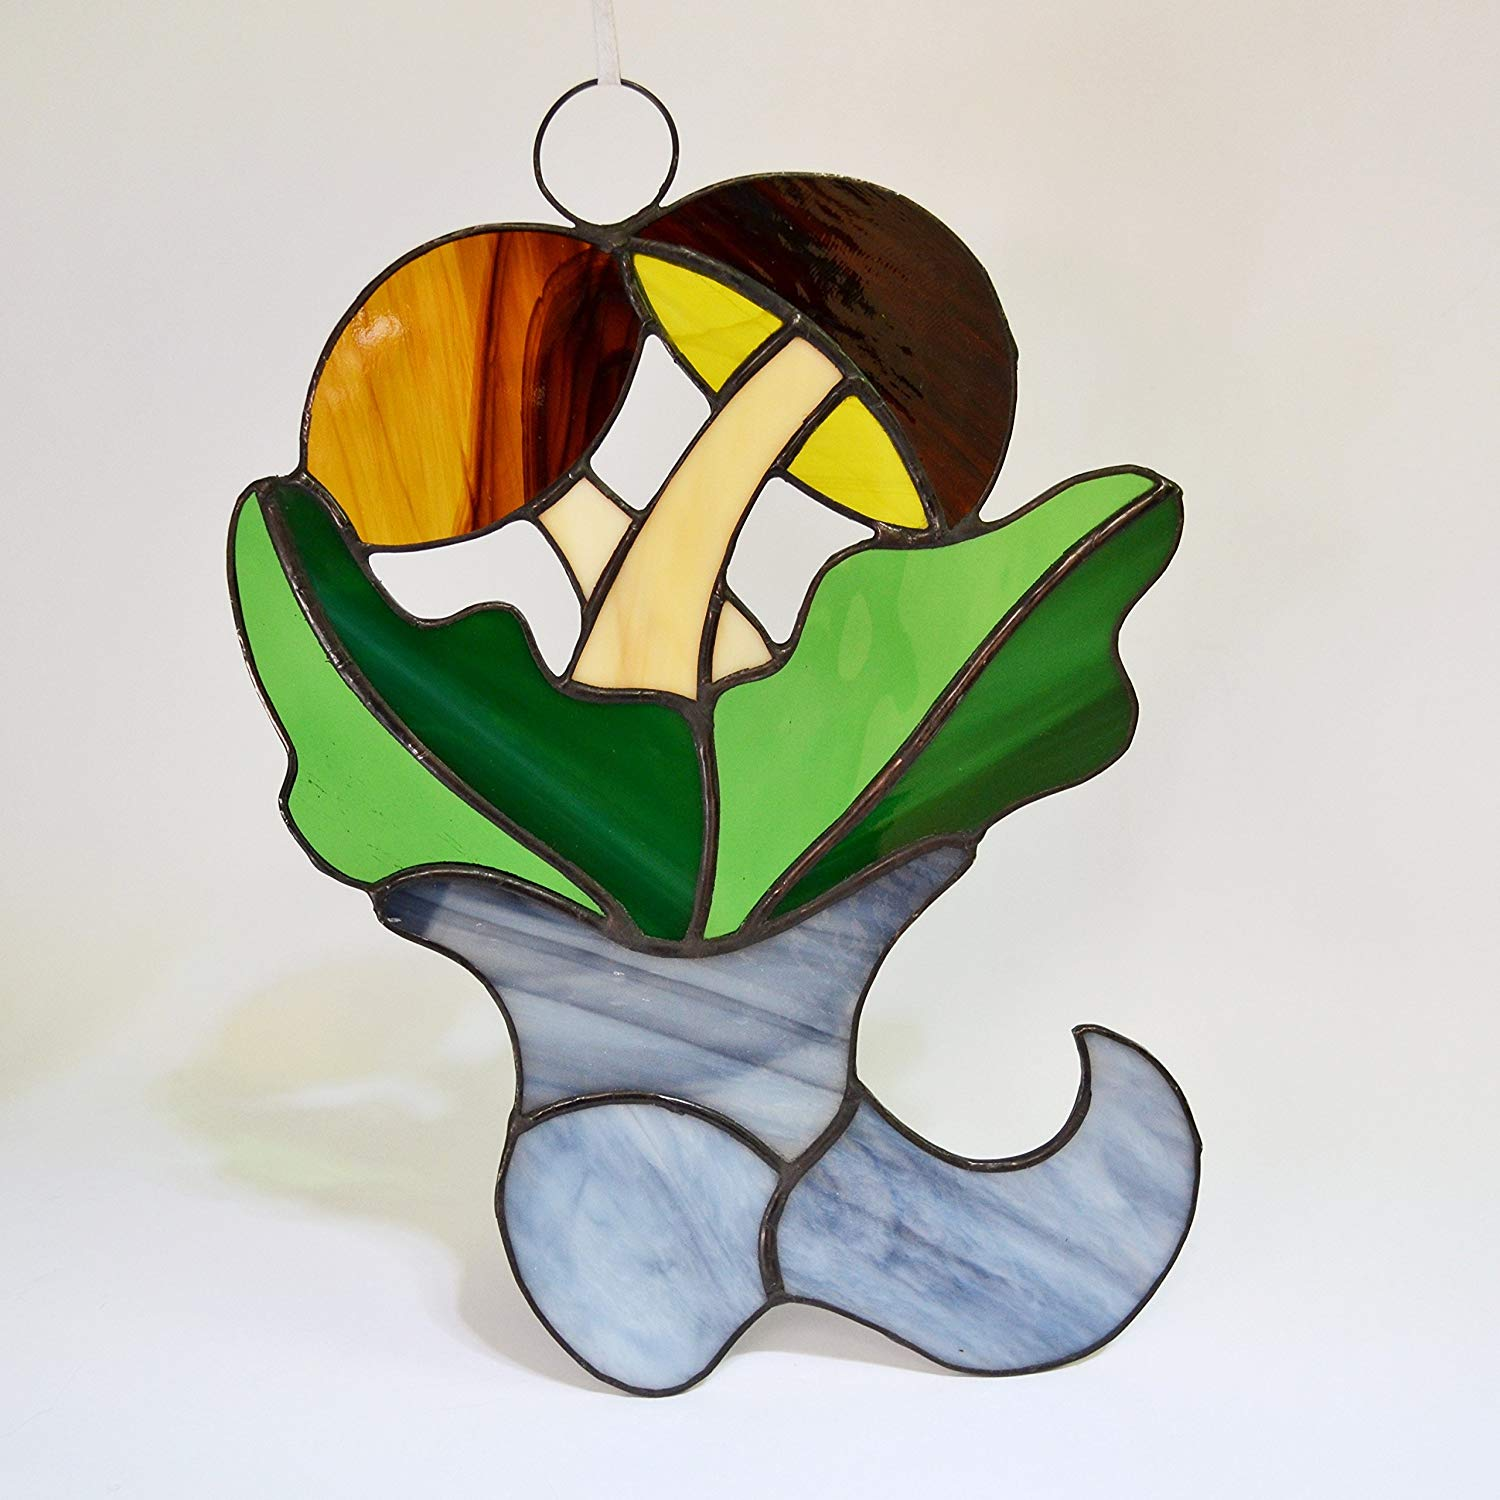 Cheap Stained Glass Garden Patterns Find Stained Glass Garden